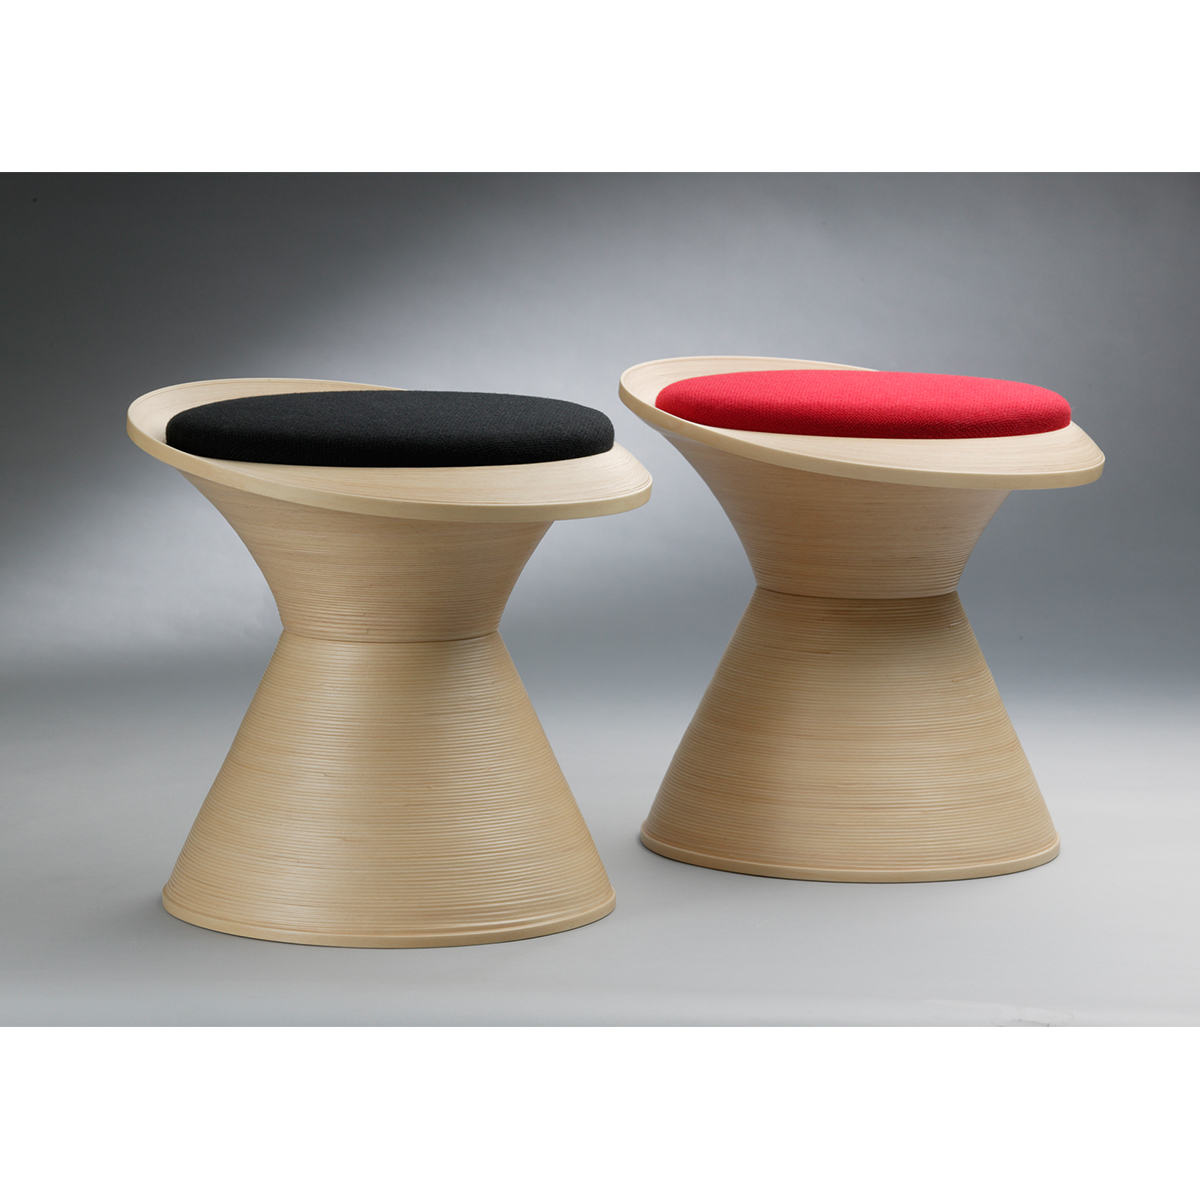 ブナコ INTERIOR GOODS STOOL IB-S758 Red /マルゲリータ